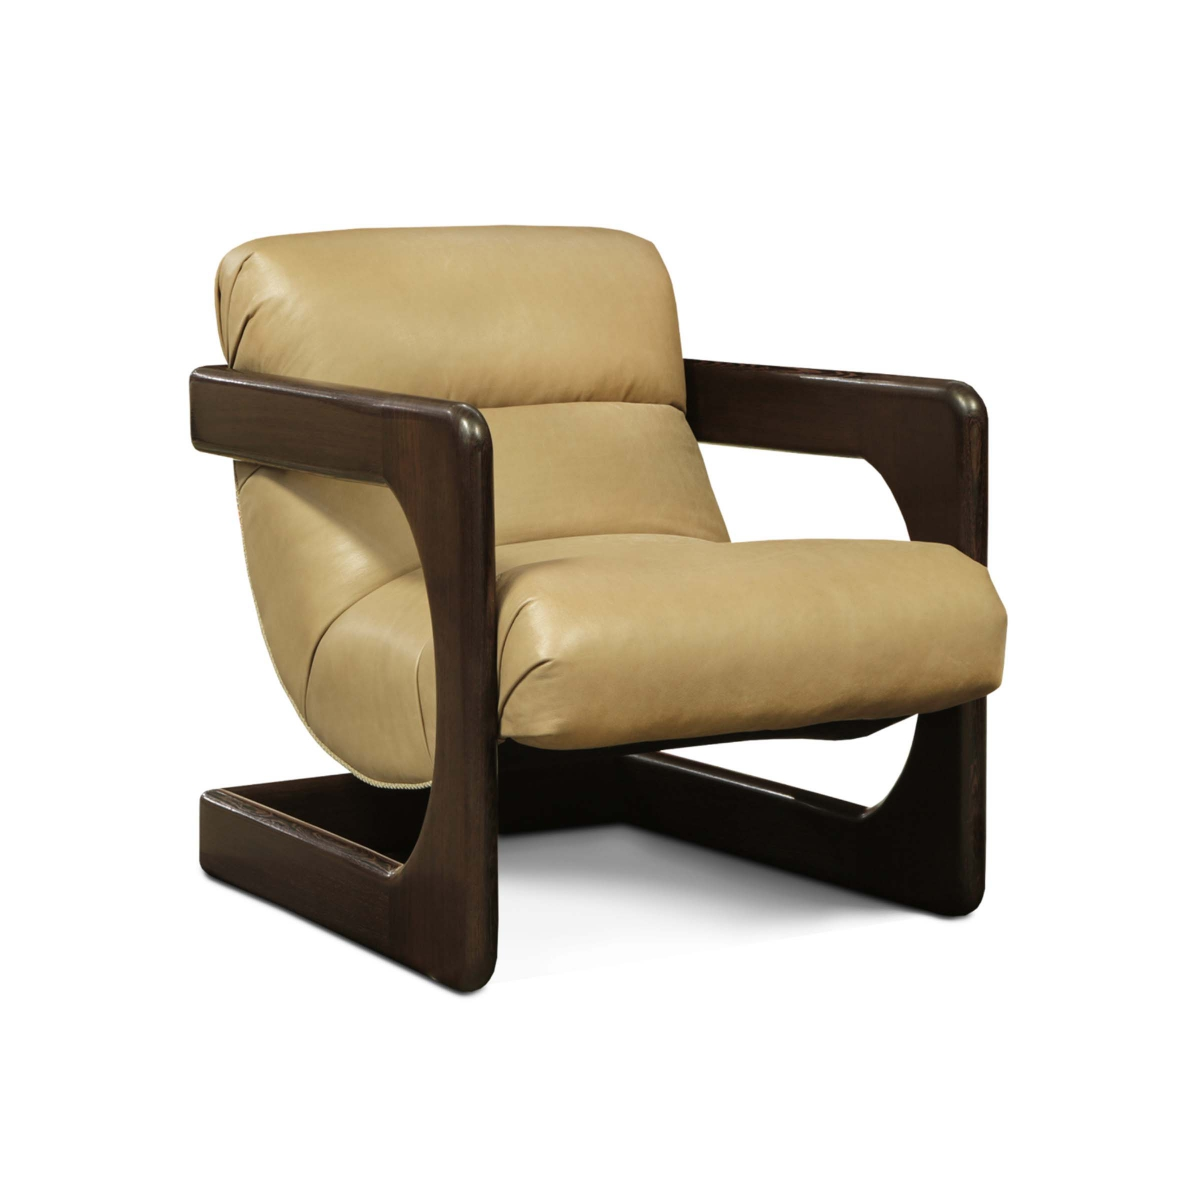 JESSIE - 1E Accent Chair Verdecca Hare